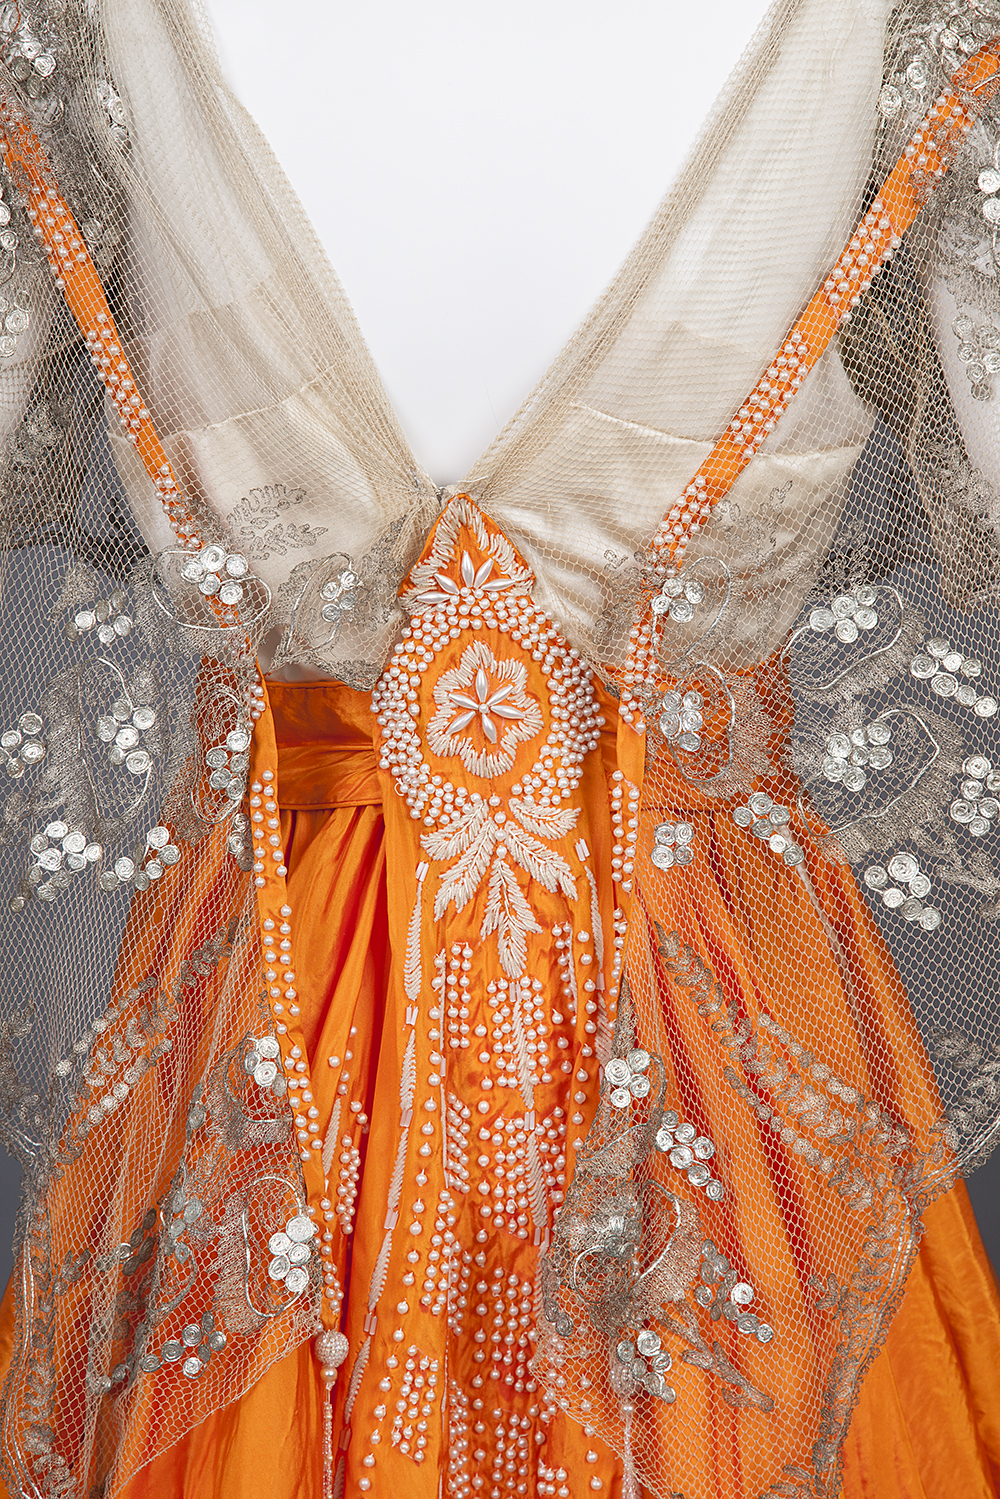 Evening Gown Of Cream Silk Satin and Orange Silk Taffeta, Hollander, L.P., 1916-1917, USA, silk, pearl beads, chenille yarn, aigrette feathers, Goldstein Museum of Design 1982.016.015